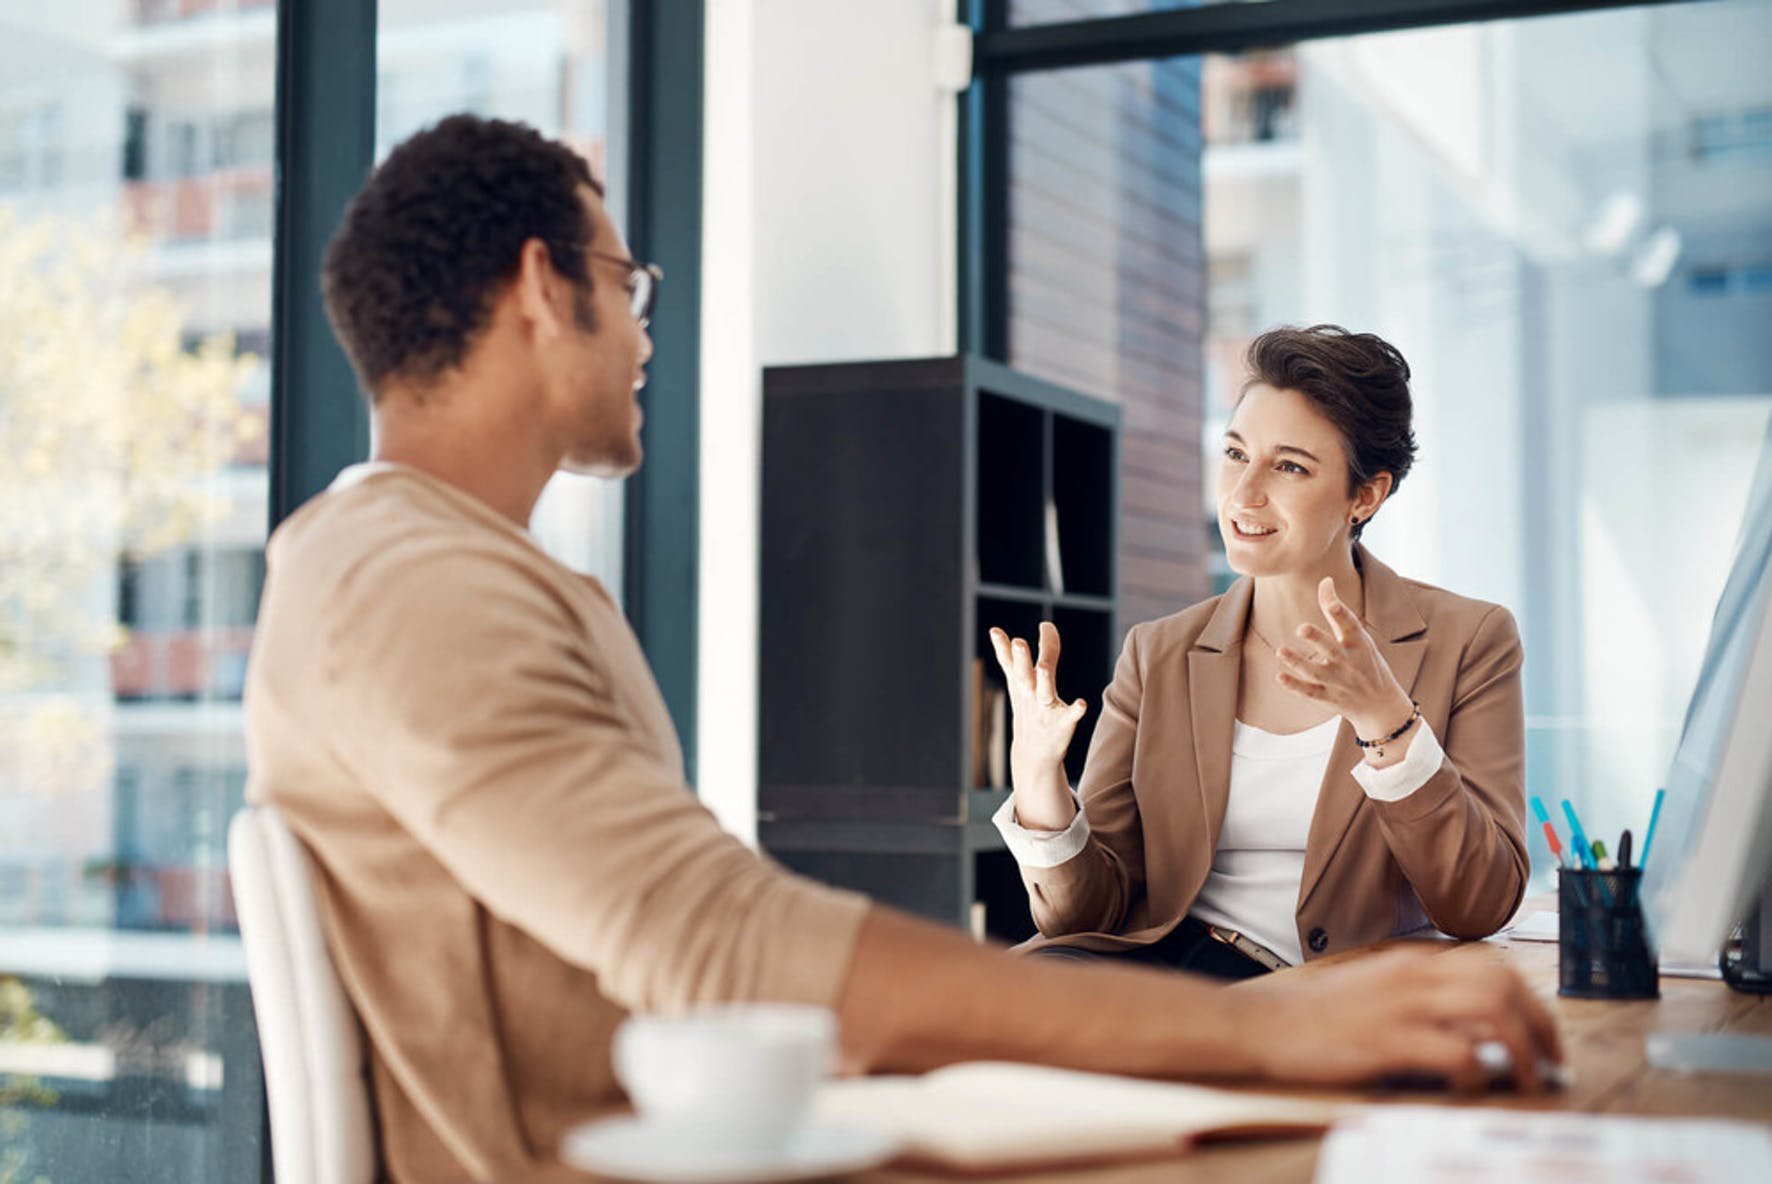 Two people discussing buying tradlines to improve their credit scores